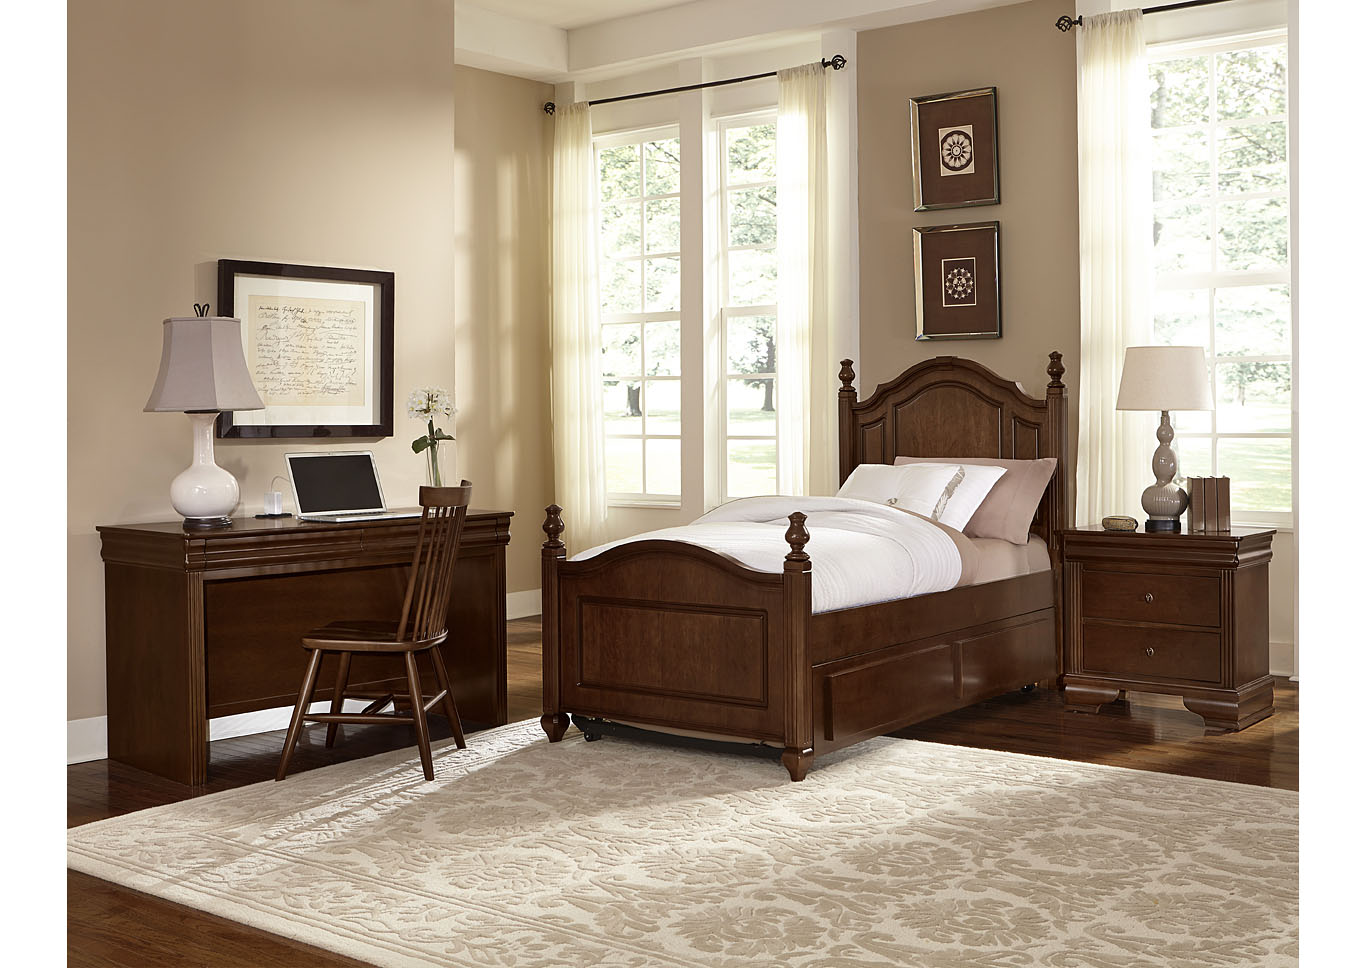 French Market French Cherry Twin Poster Bed w/ Desk, Chair and Nightstand,Vaughan-Bassett